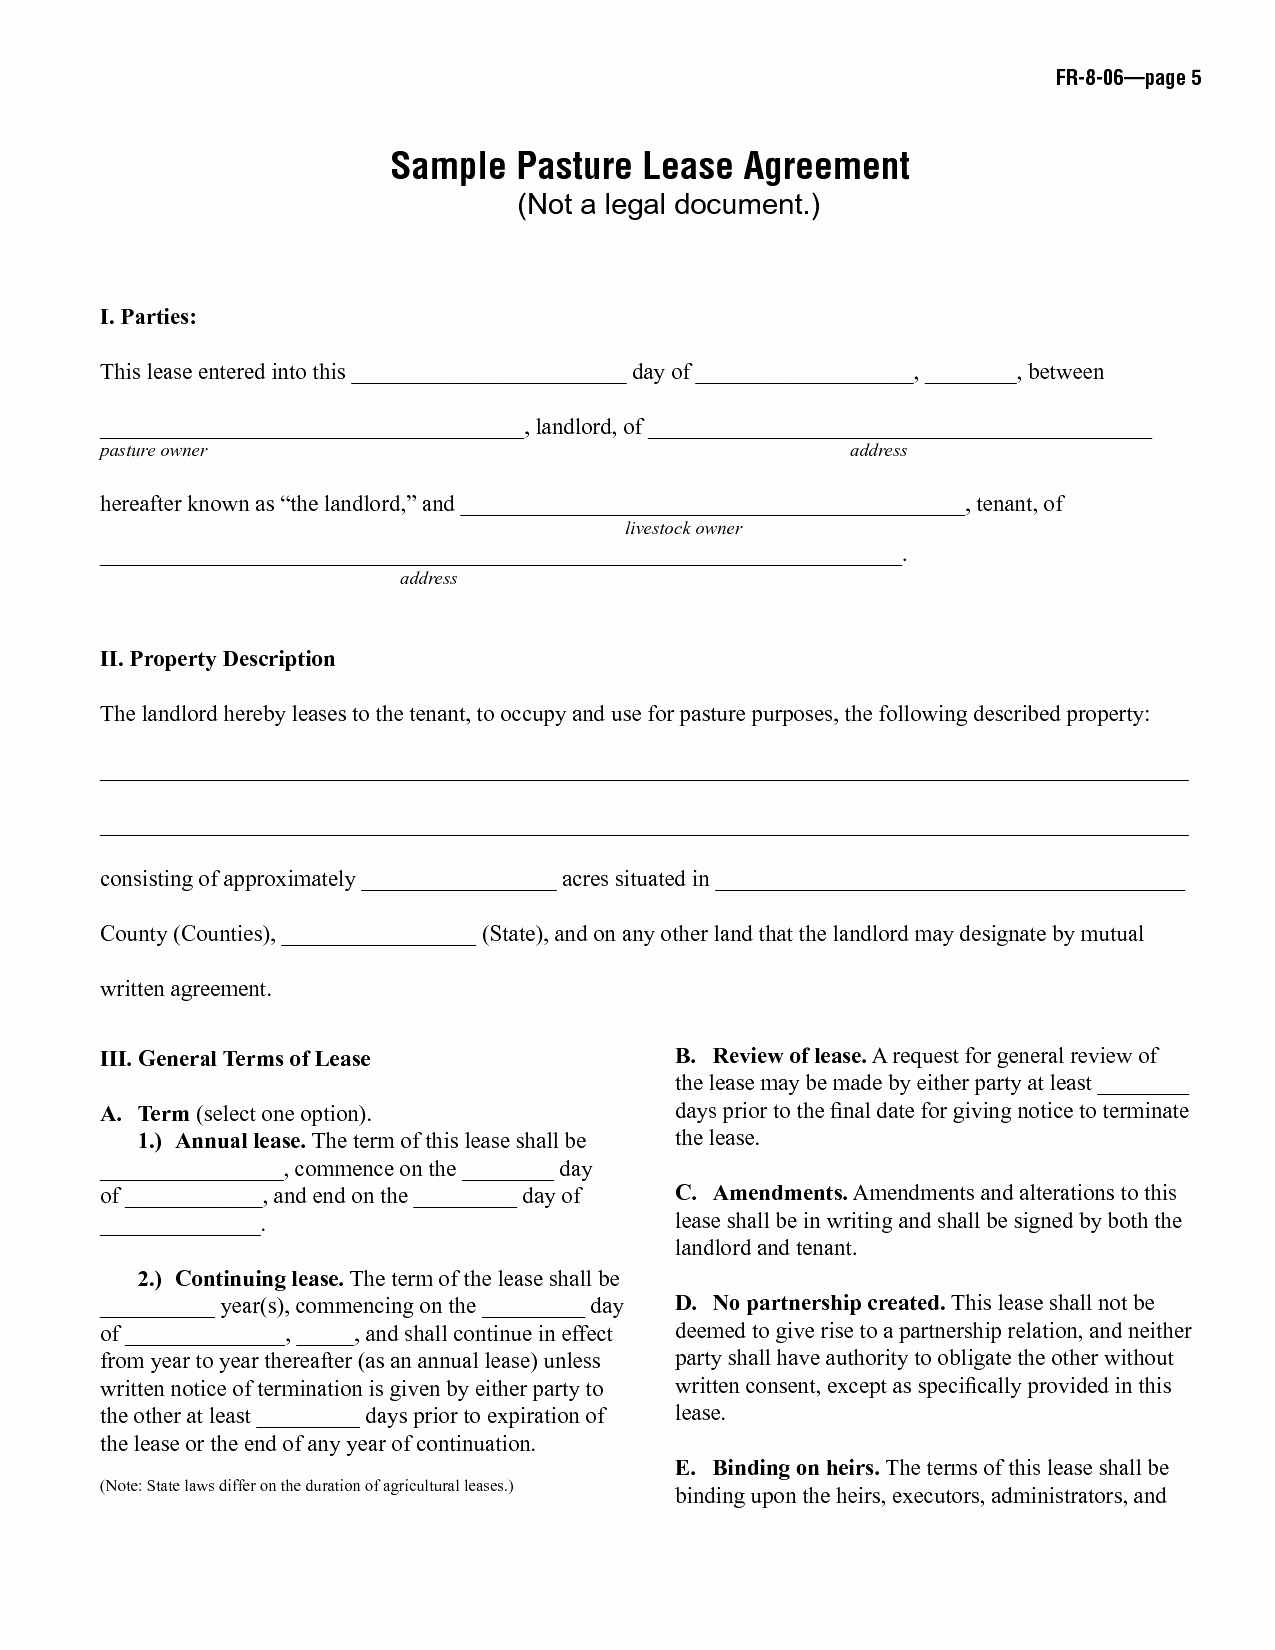 Blank Lease Agreement Example Mughals